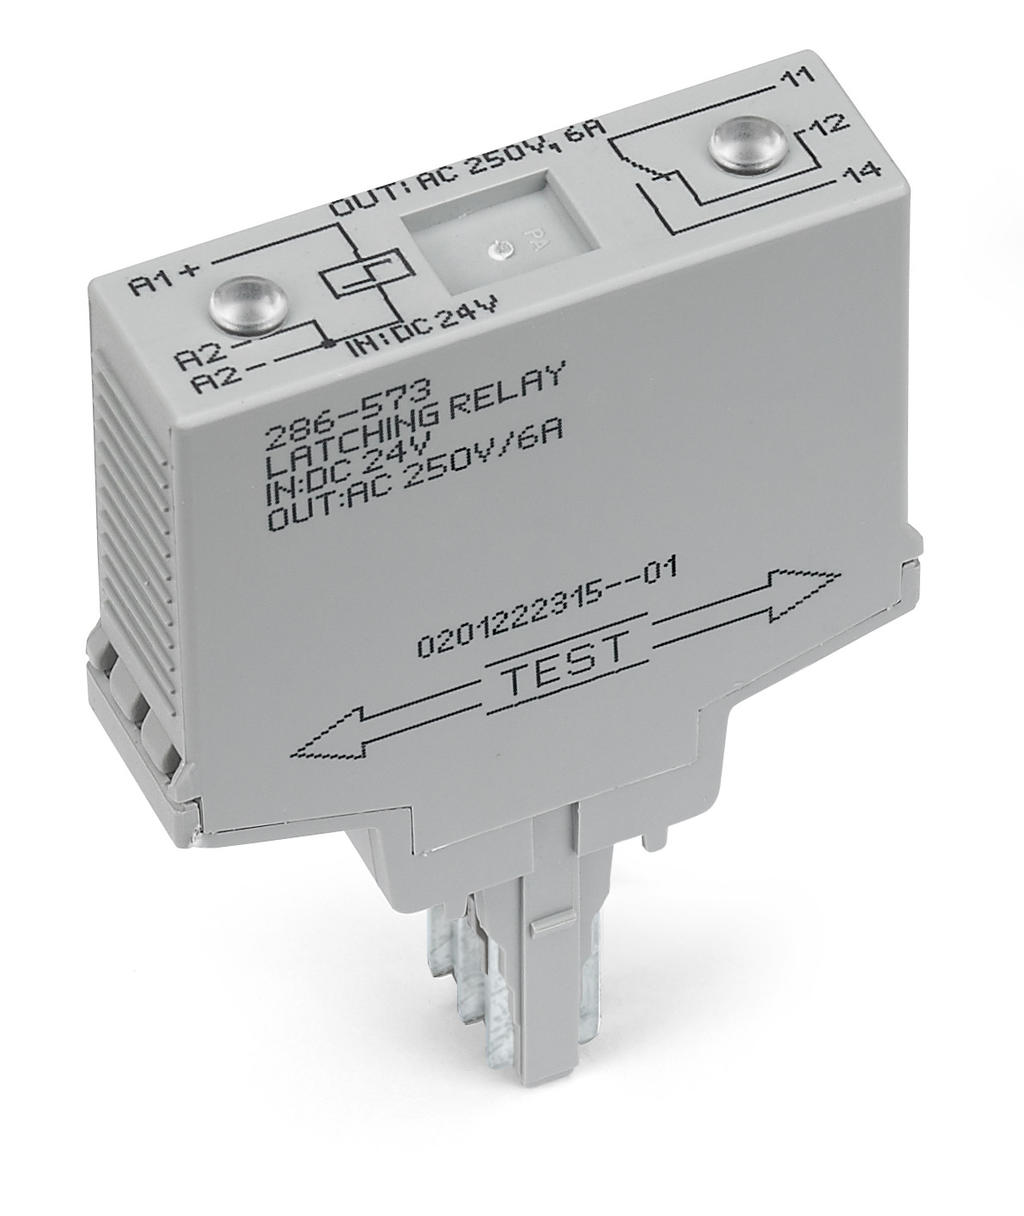 Wago Latching Relay Module 286 573 Switches The Load Current And A Circuit That Controls Nominal Input Voltage 24 Vdc 1 Changeover Contact Limiting Continuous 6 Red Status Indicator Width 17 Mm